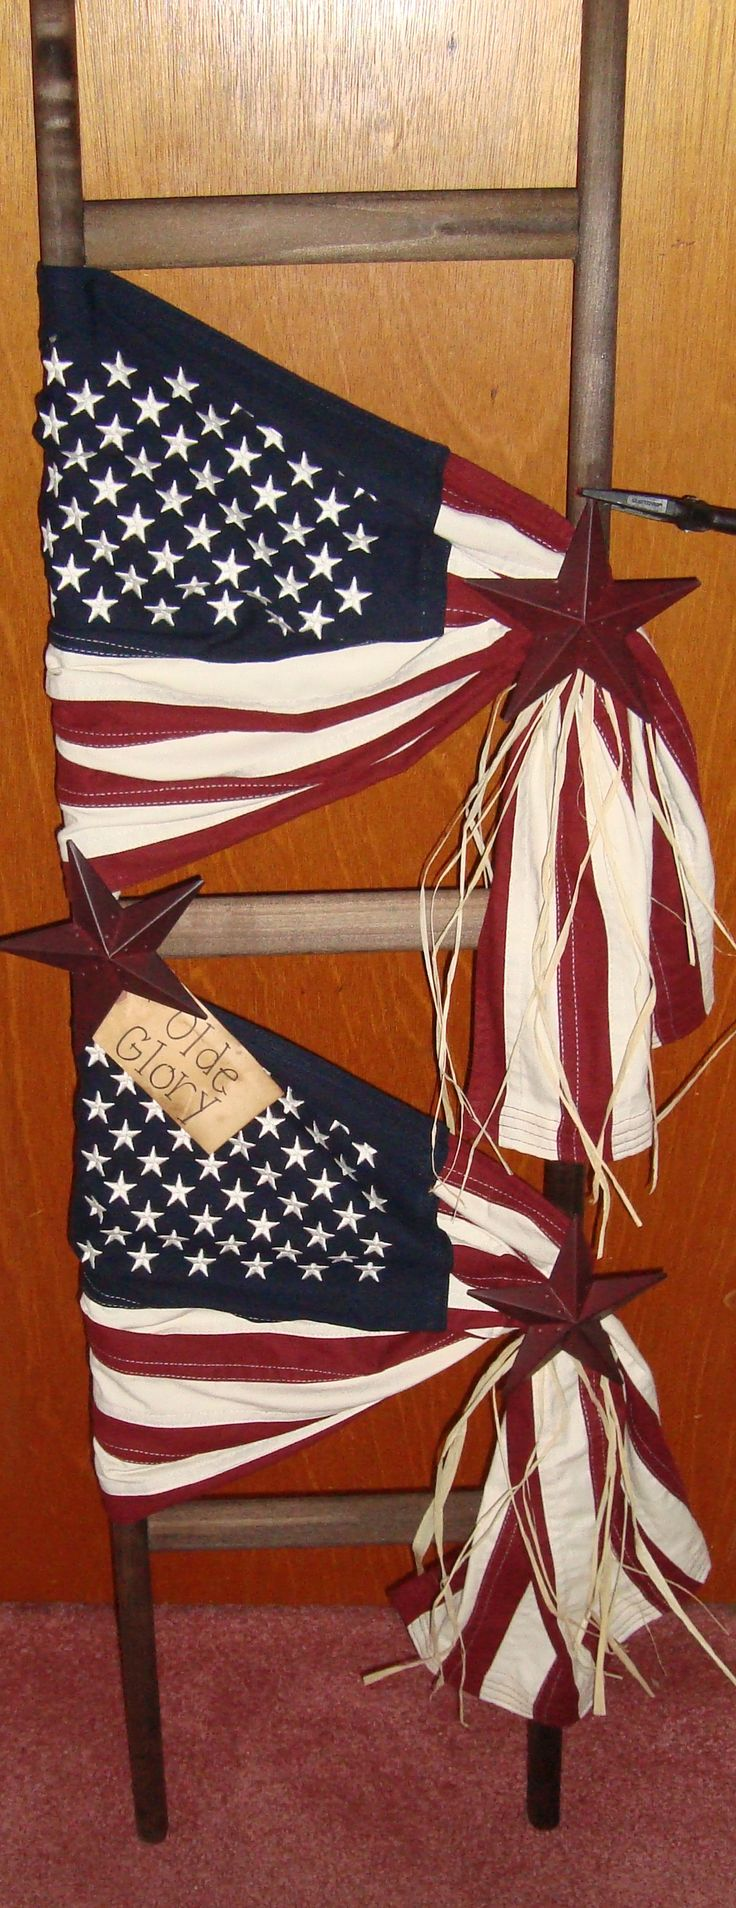 4 foot rustic wooden ladder with two Americana flags accented with raffia and stars. $48.00